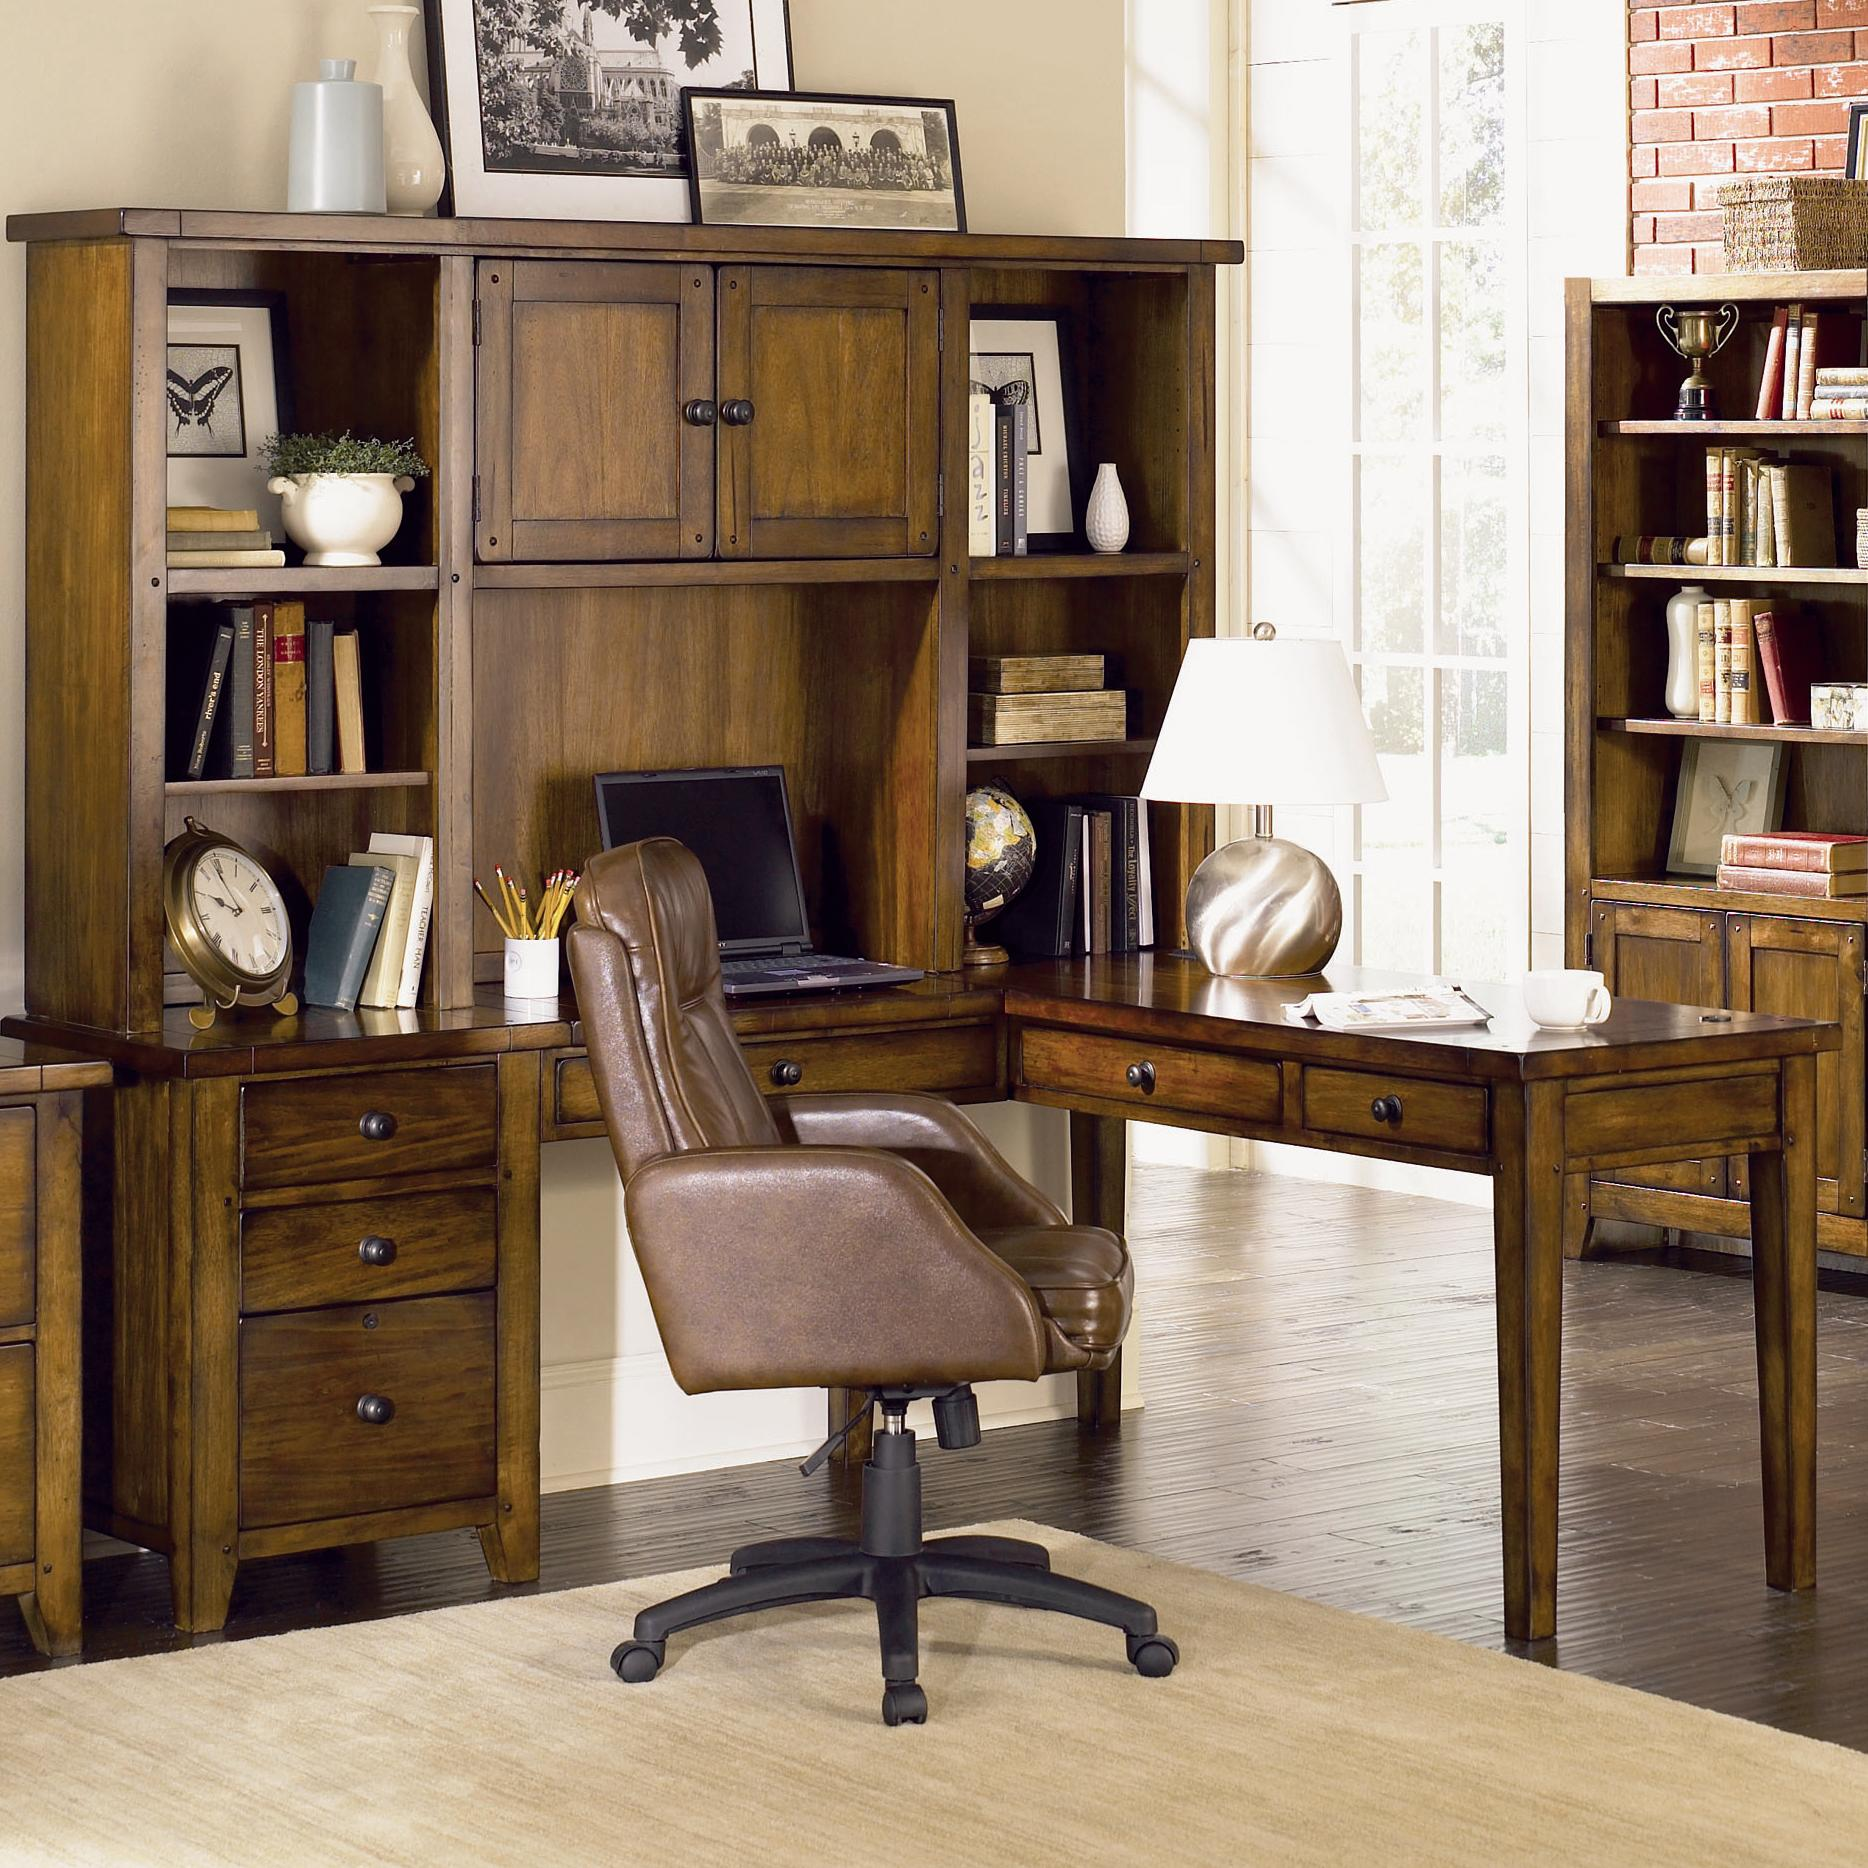 Superb img of Shaped Desk & Hutch by Aspenhome Wolf and Gardiner Wolf Furniture with #926C39 color and 1868x1868 pixels